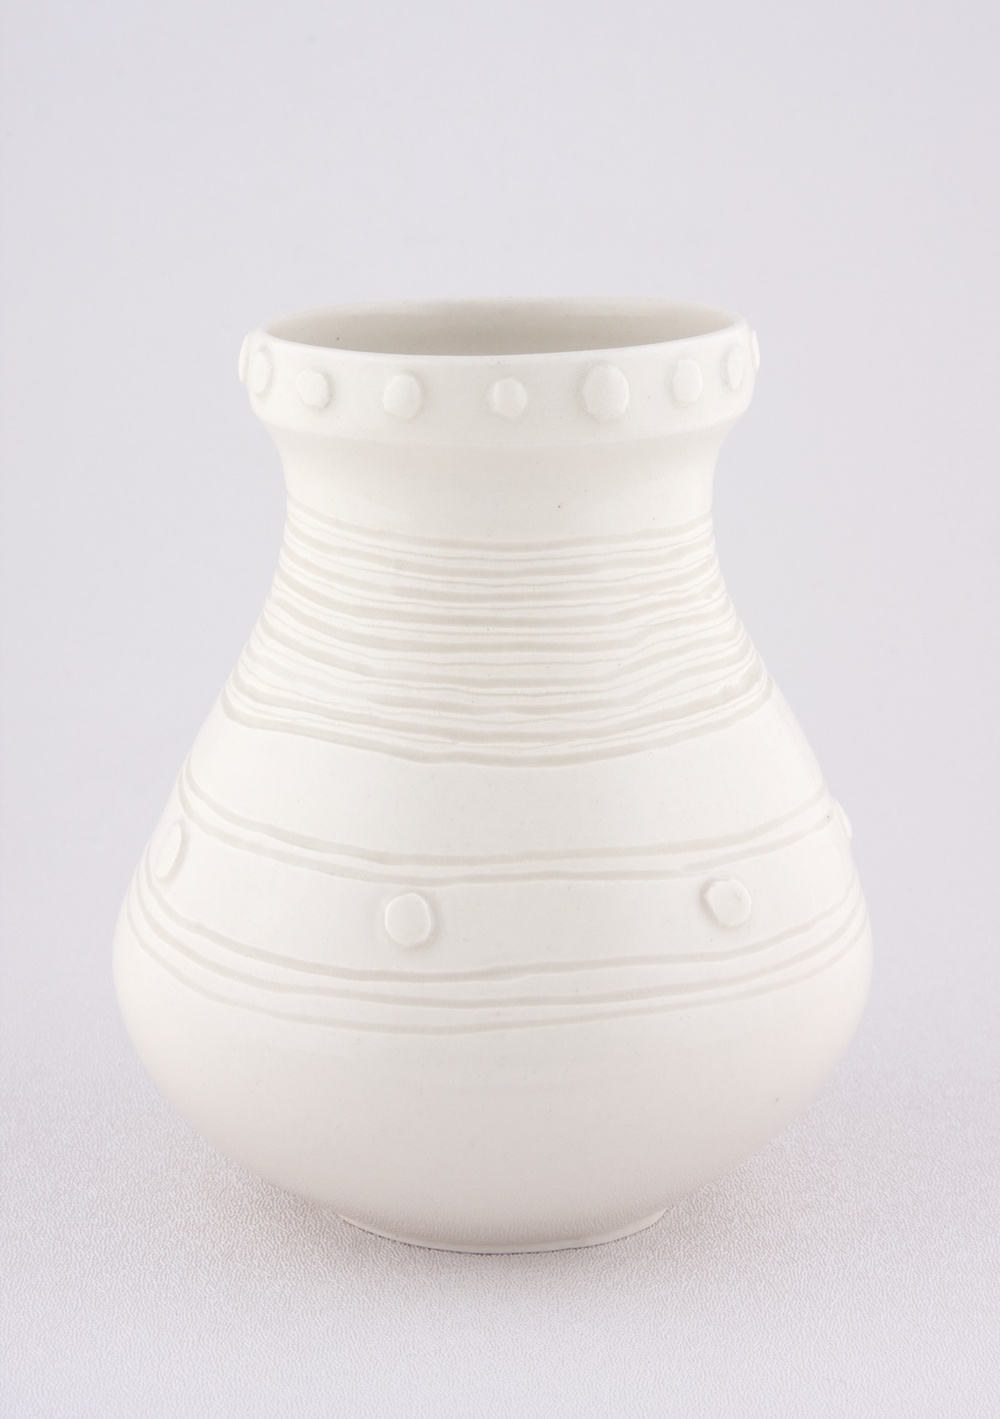 Shio Kusaka  Untitled (yayoi carving 3)  2009 Porcelain 6h x 5w x 5d in SK056